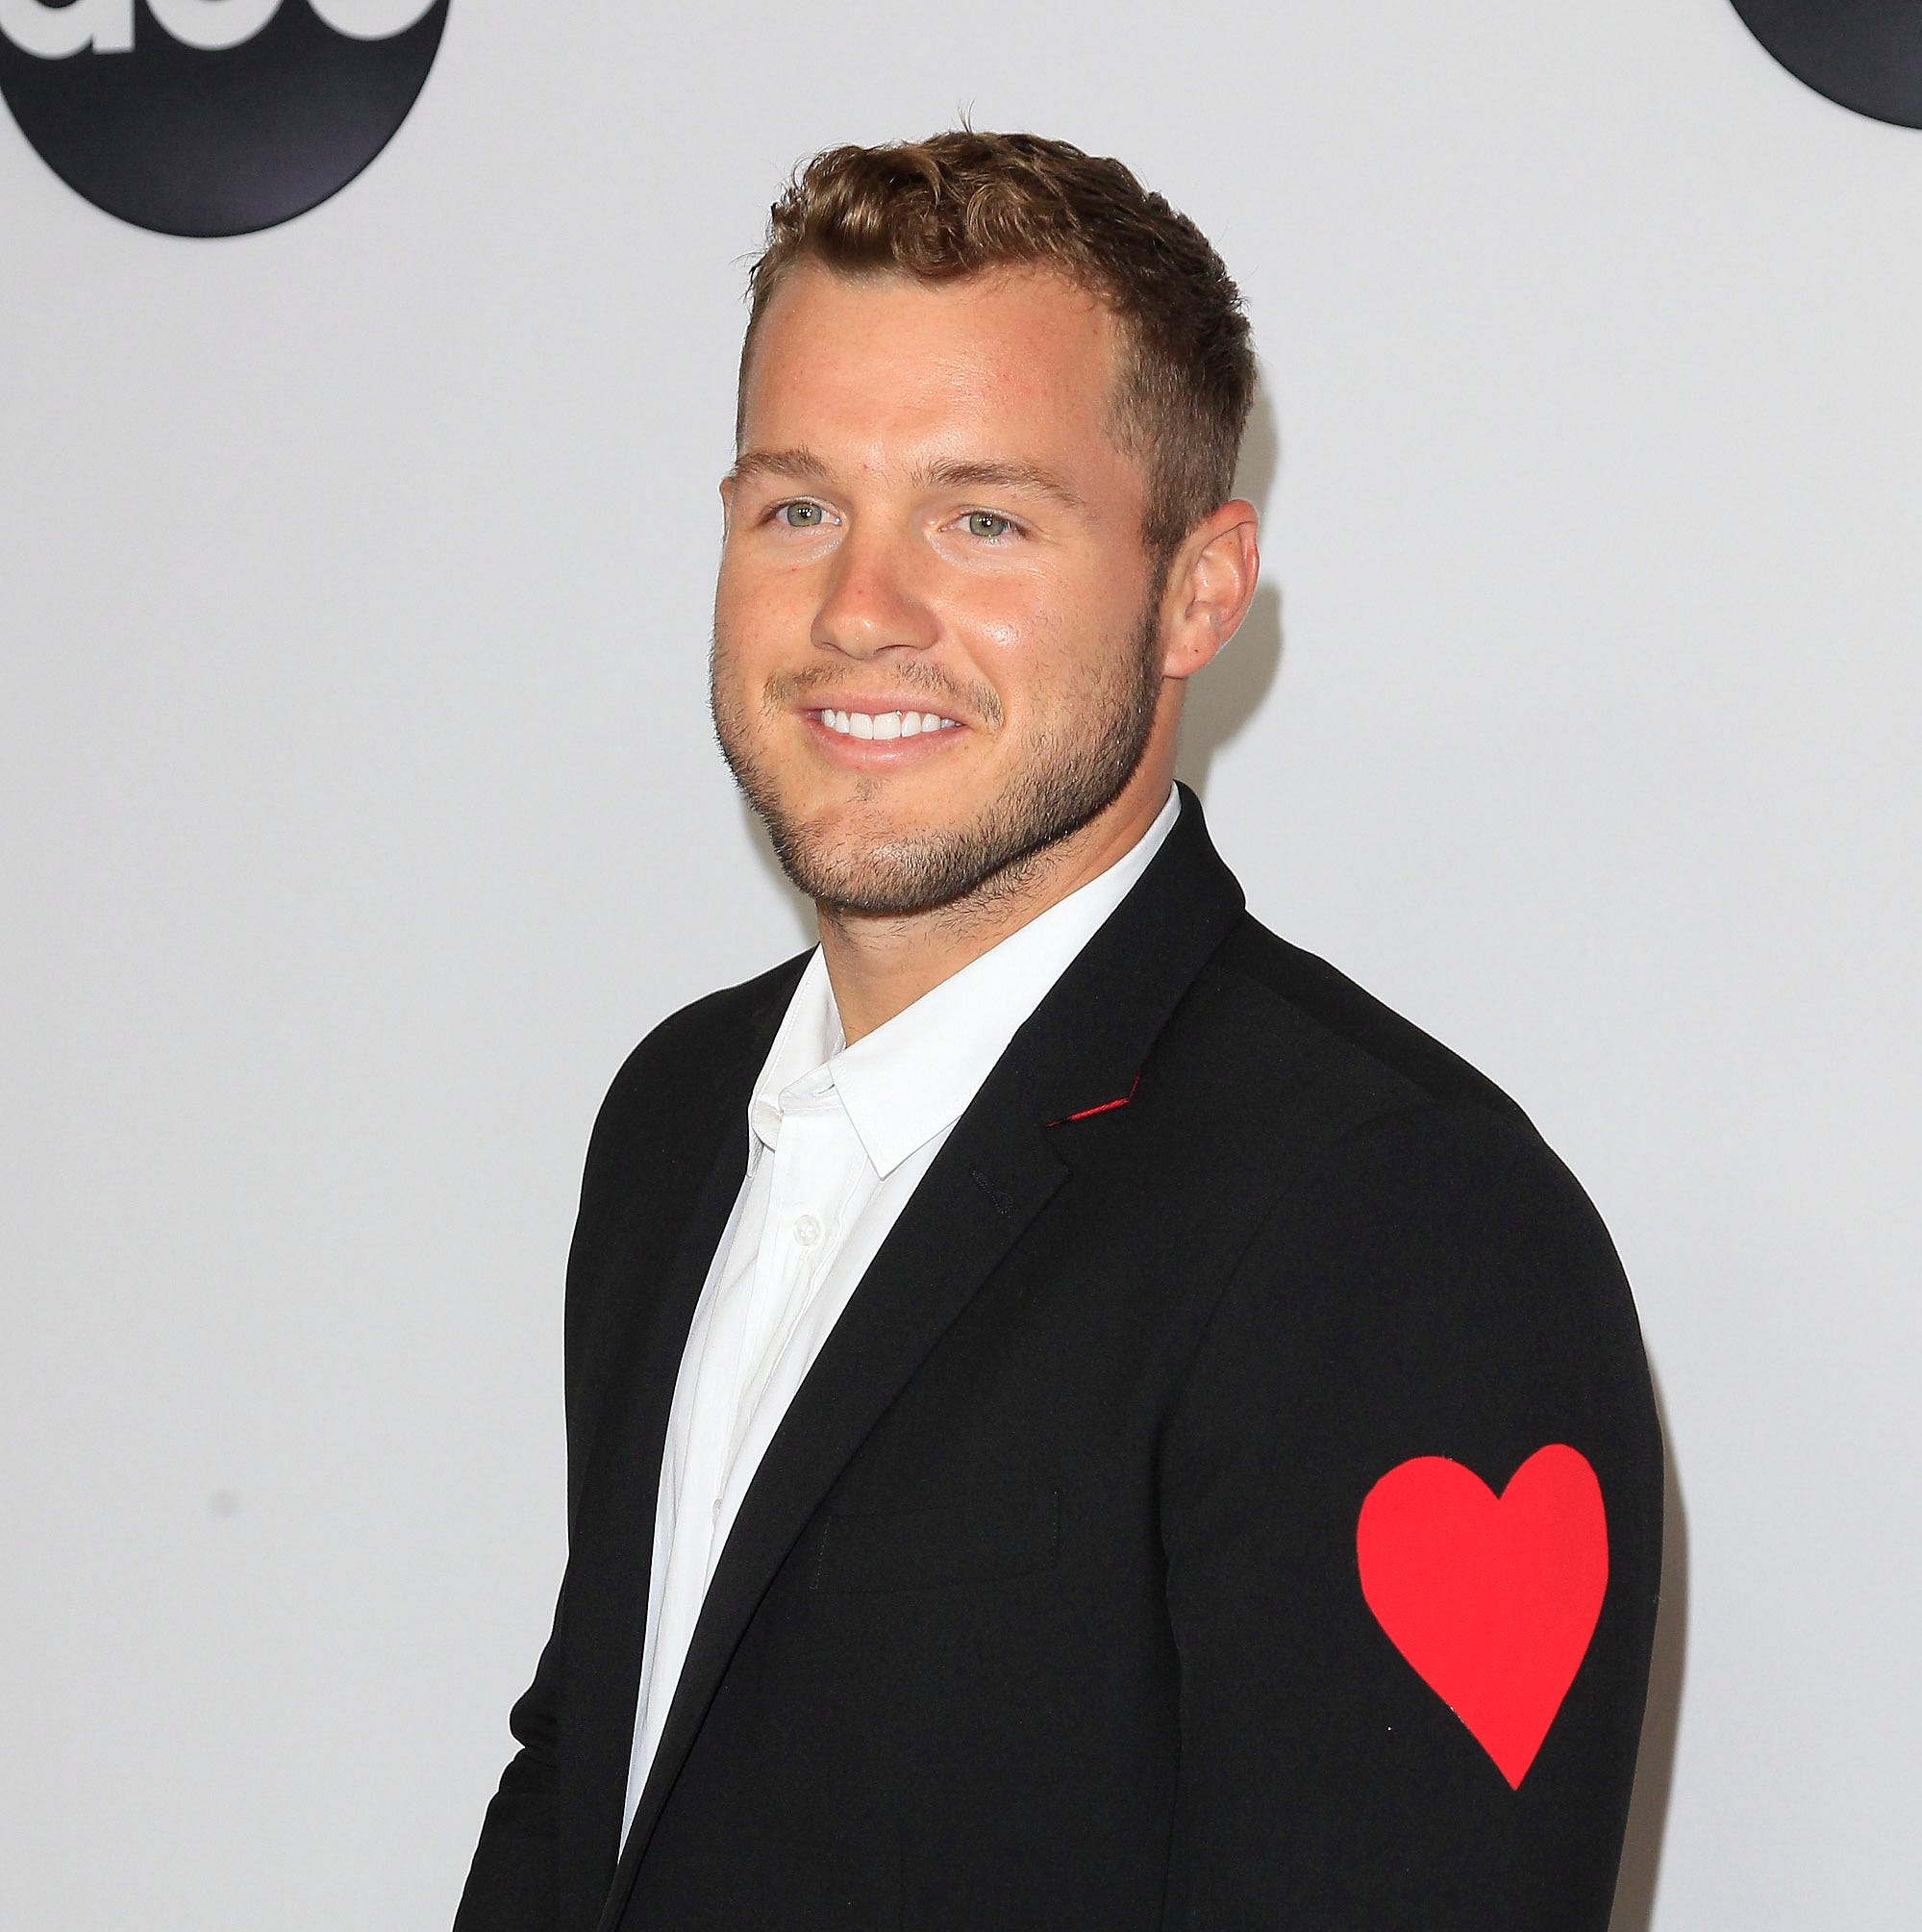 epa06934468 US actor Colton Underwood arriving at the ABC TCA Summer Press Tour 2018 at the Beverly Hilton Hotel in Beverly Hills, California, USA, 07 August 2018.  EPA-EFE/NINA PROMMER ORG XMIT: NPX01